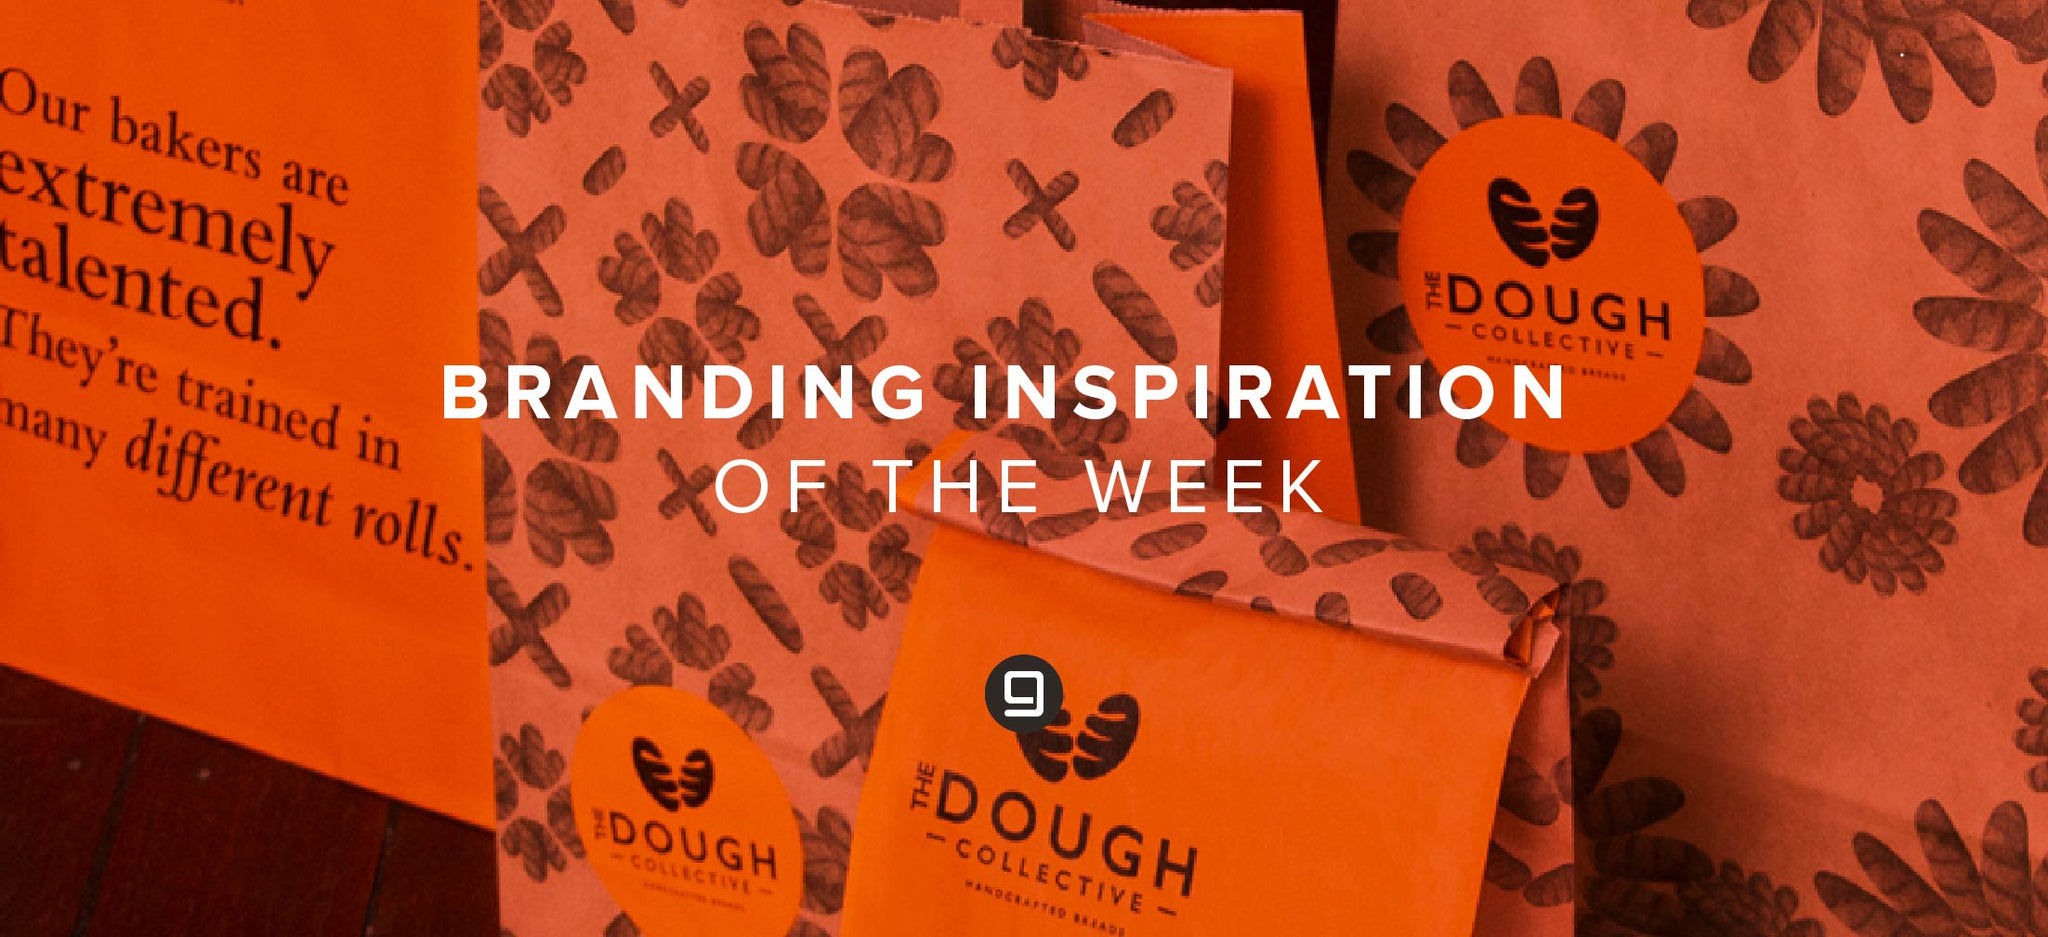 Design Of The Week: The Dough Collective